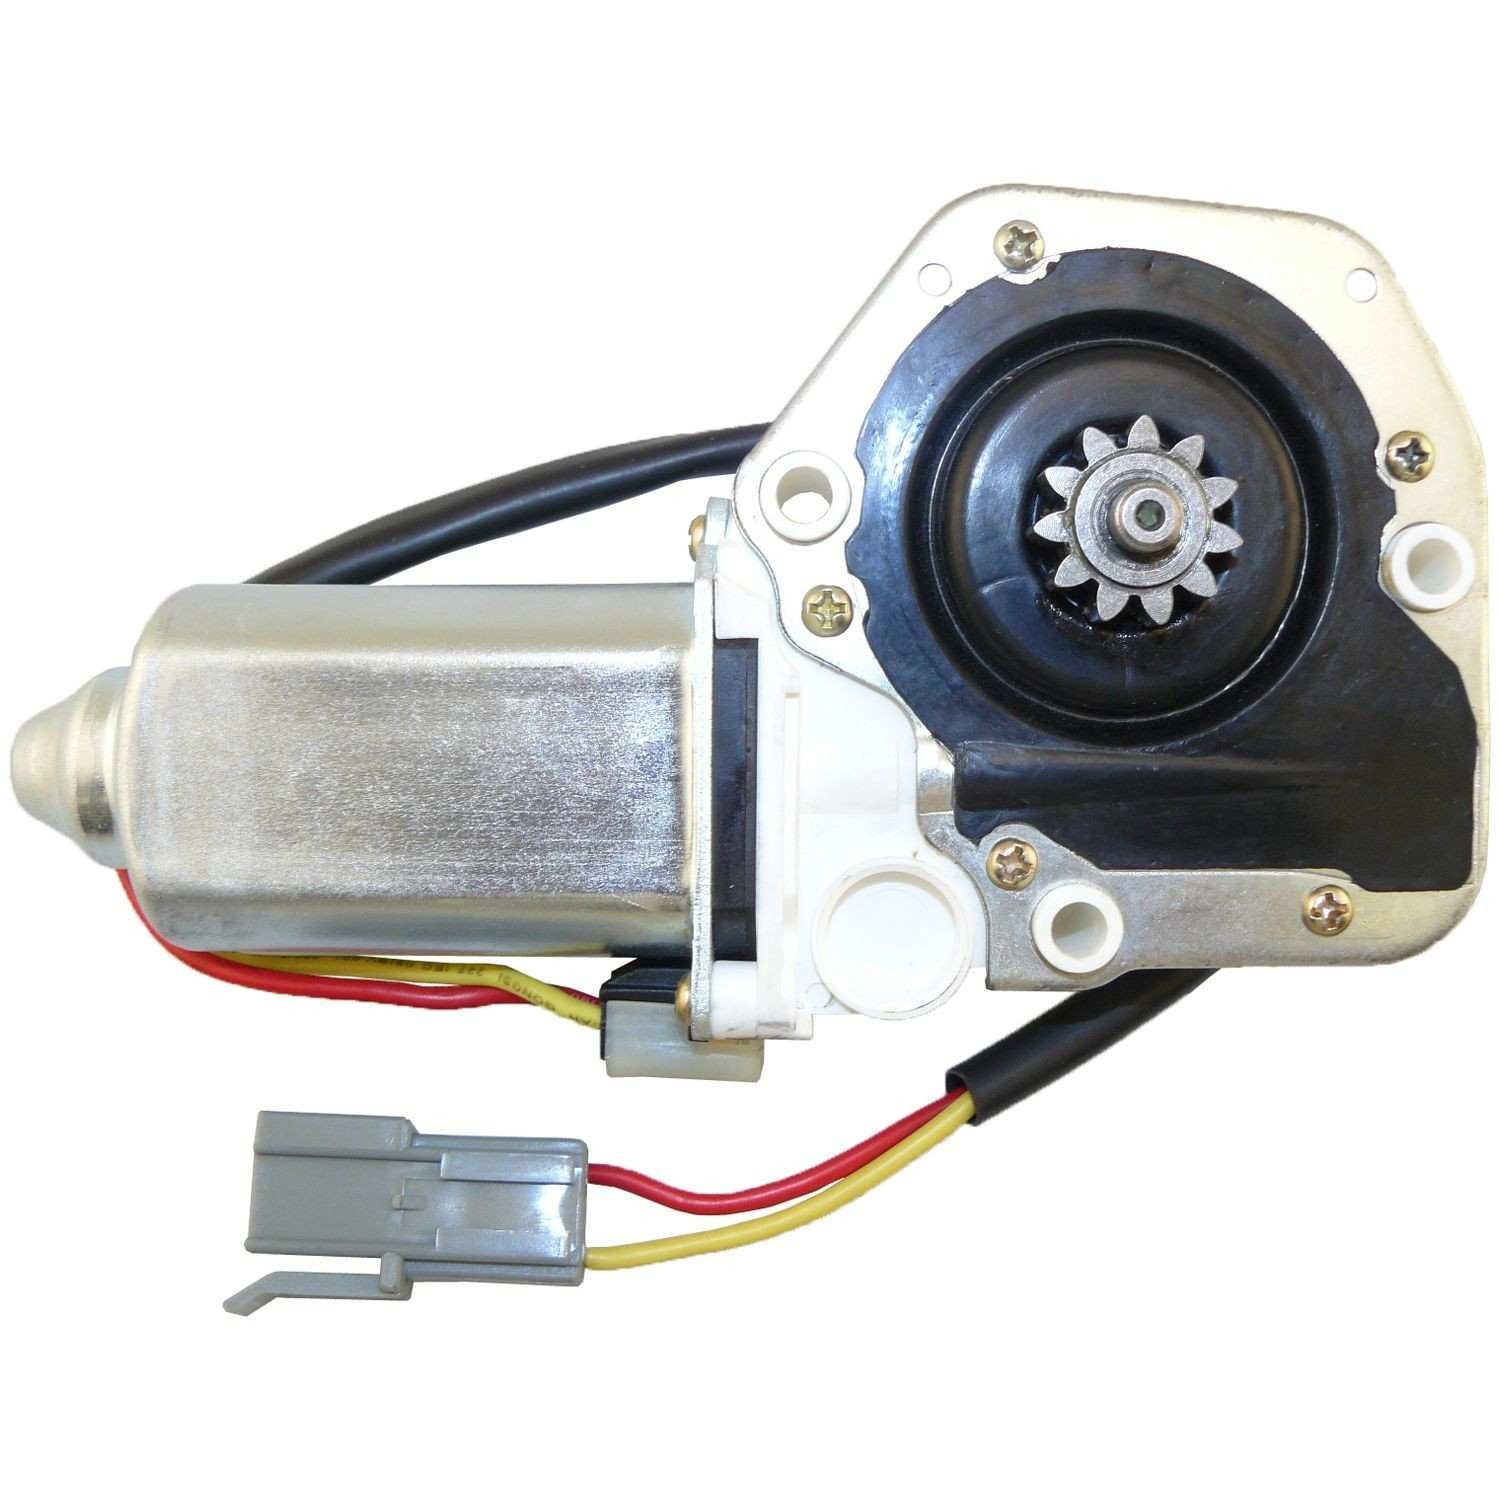 MAGNETI MARELLI OFFERED BY MOPAR - Power Window Motor (Front Right) - MGM 1AMWM83102